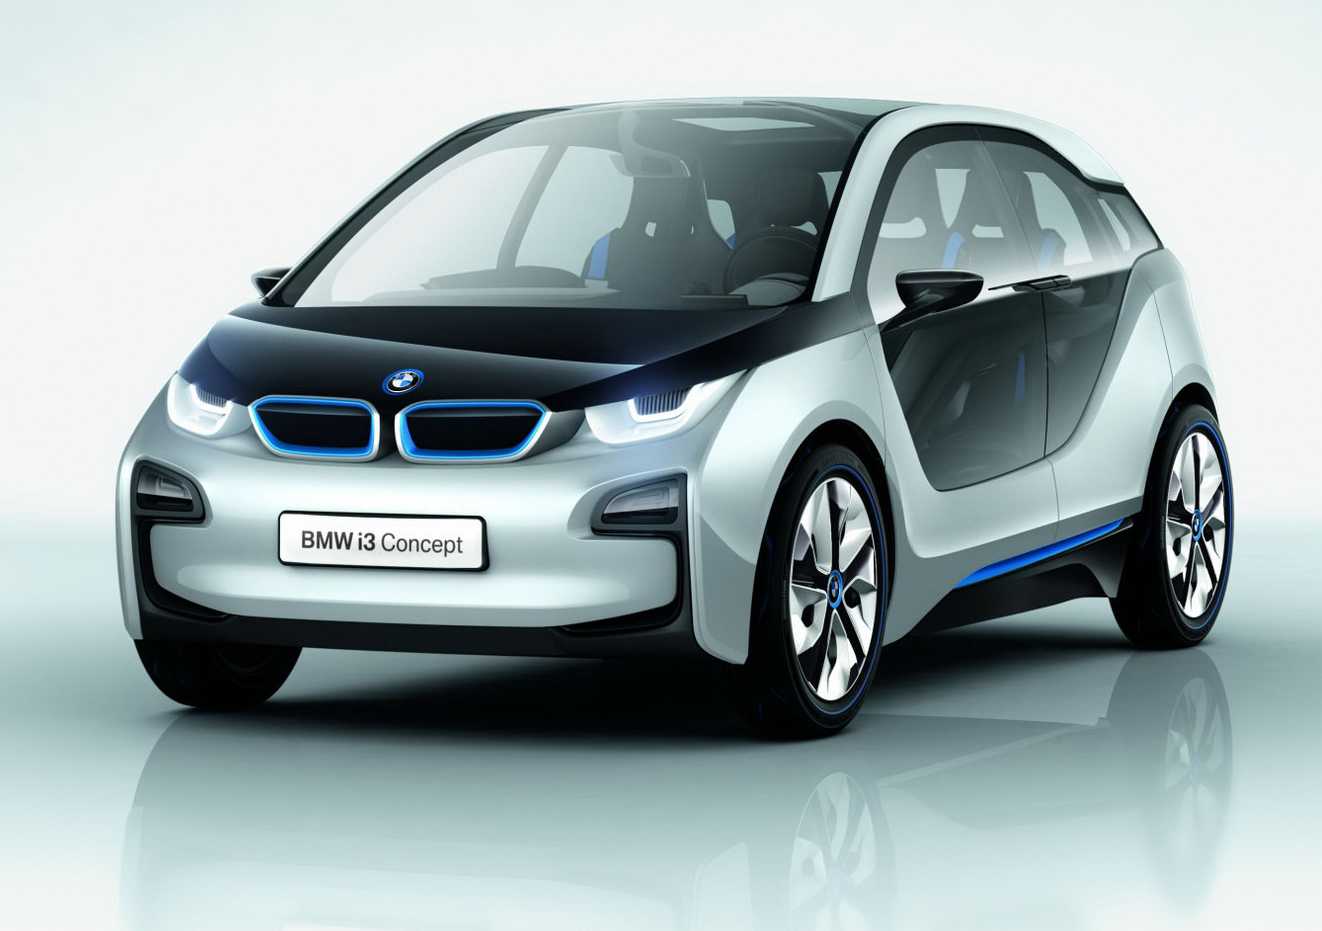 2013 BMW I3 Concept Car Wallpapers ~ Bikes Cars Wallpapers